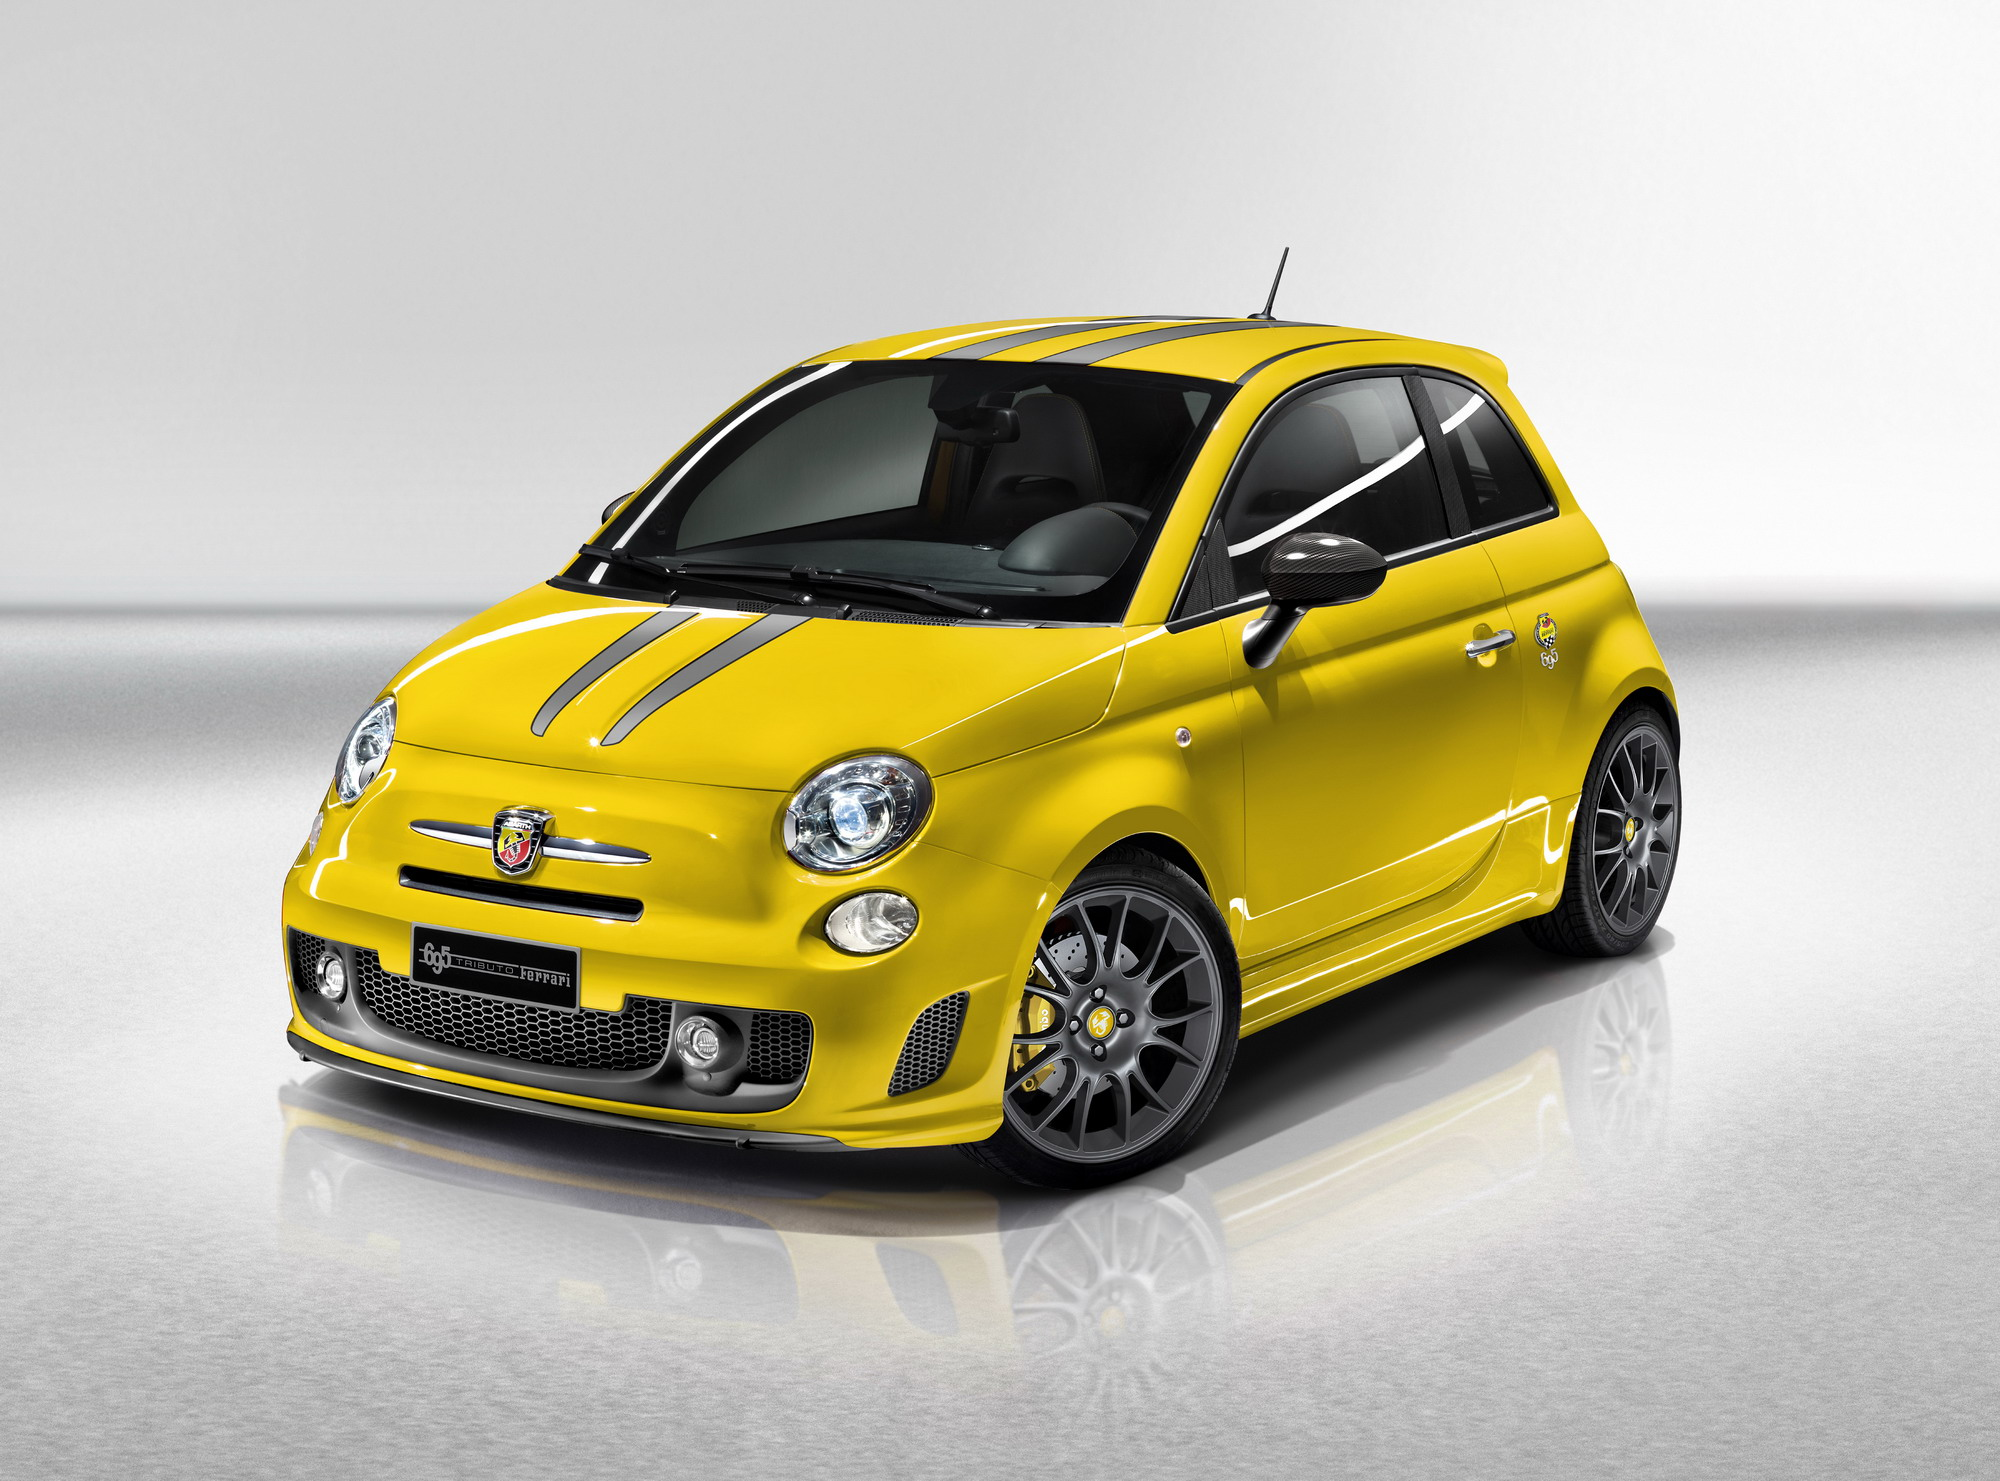 2010 Fiat Abarth 695 Tributo Ferrari | Top Sd